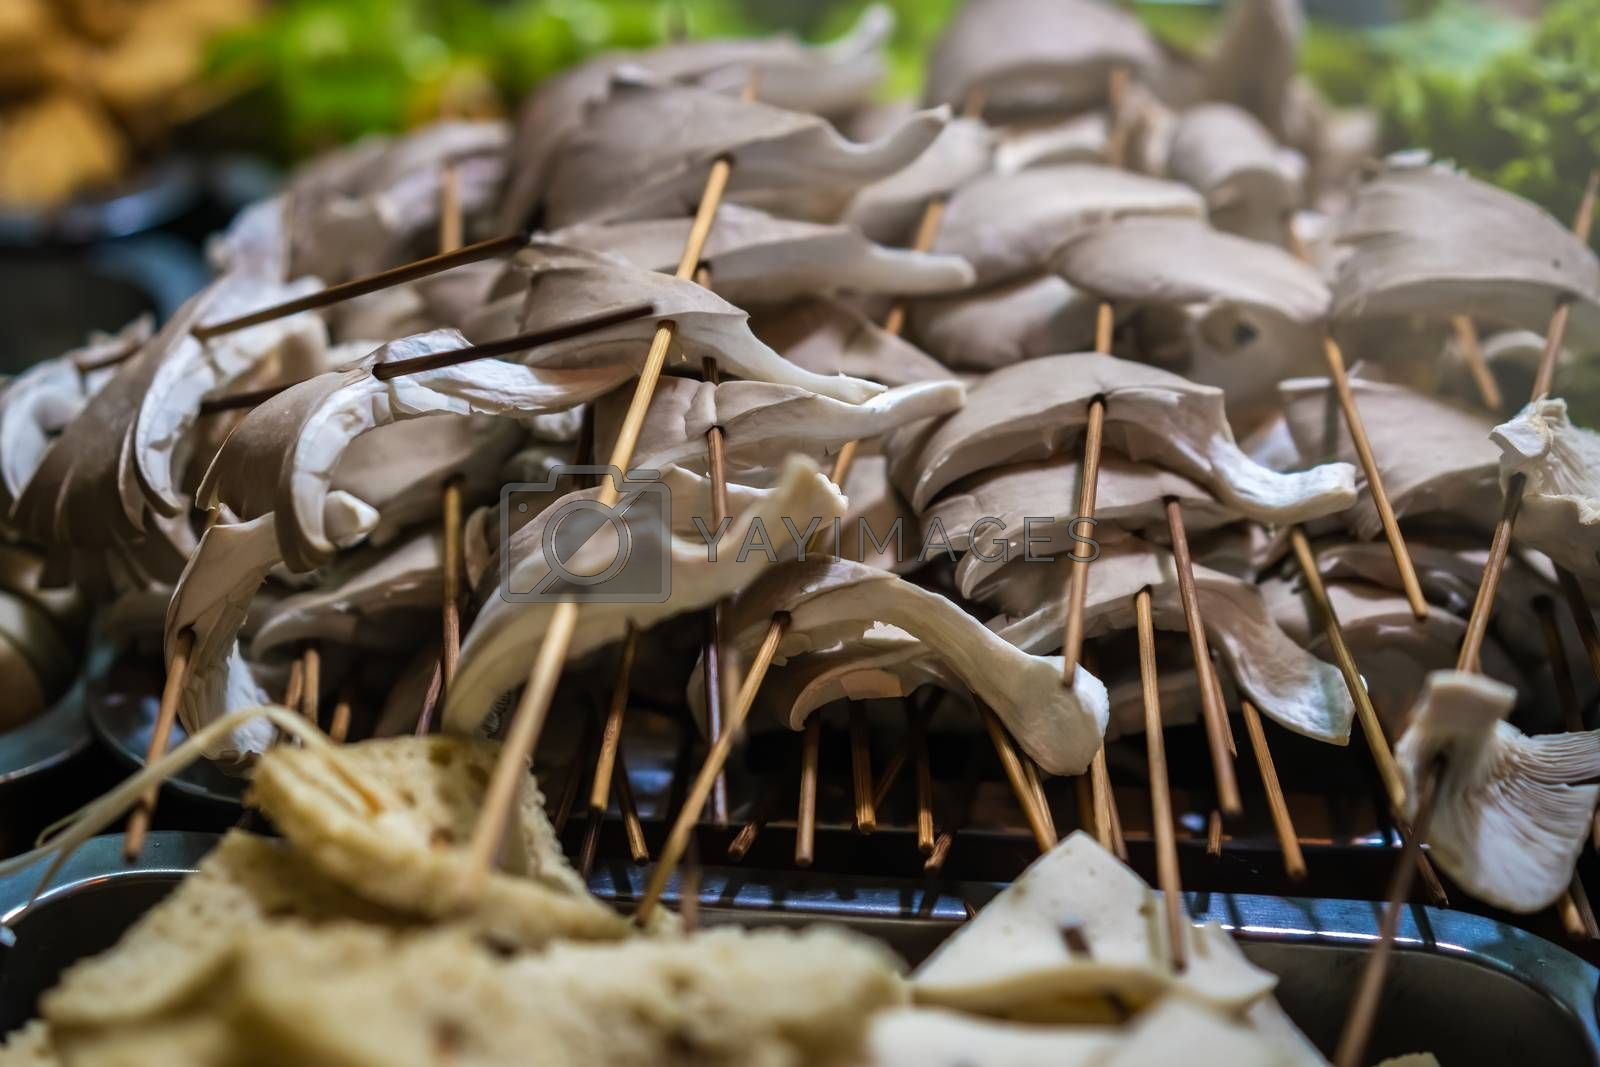 Freshly cut mushrooms on wooden sticks, ready to be grilled on the street in the Muslim Quarter, Xian town, China